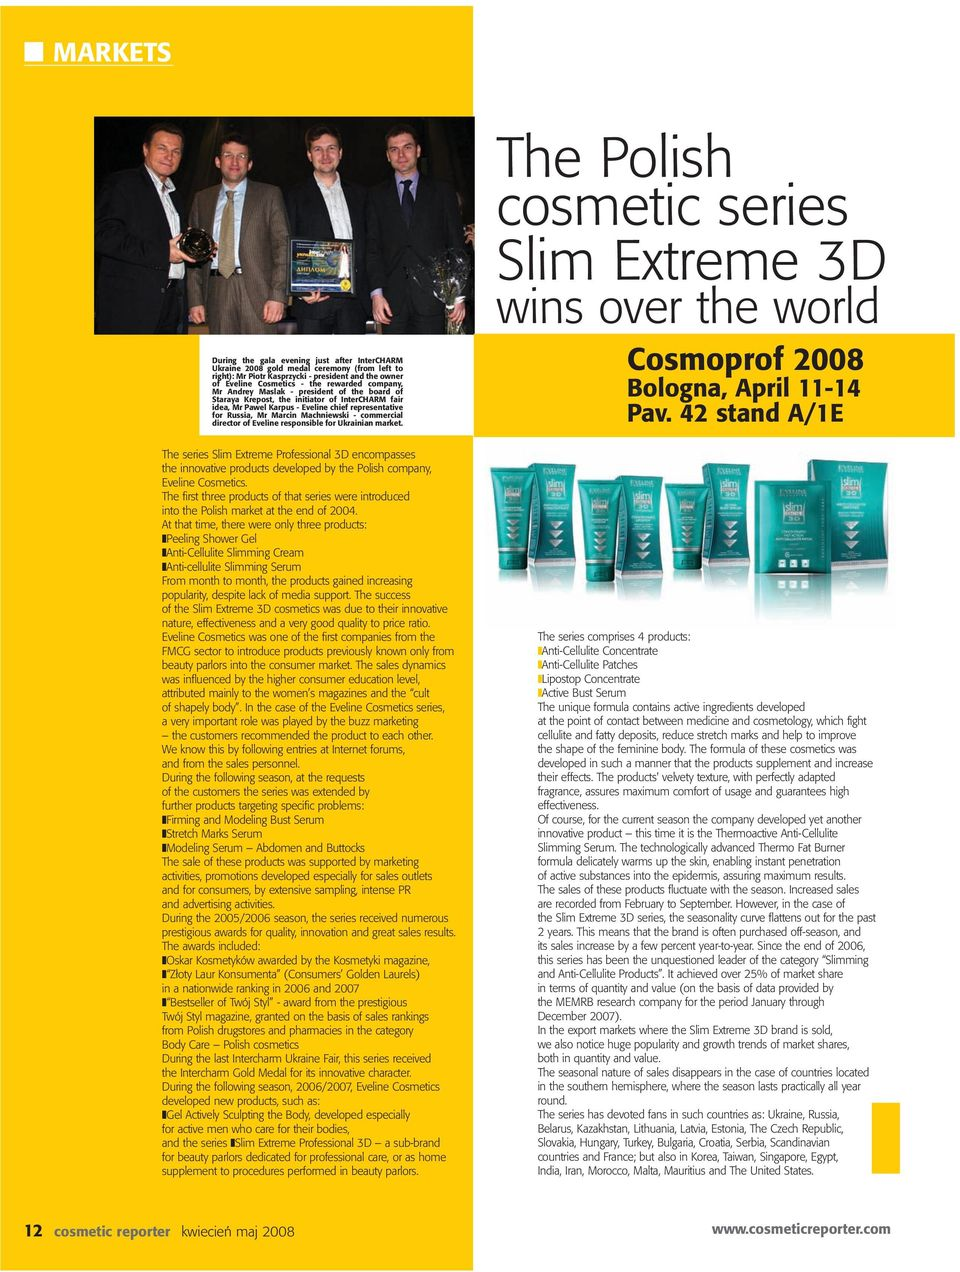 director of Eveline responsible for Ukrainian market. The series Slim Extreme Professional 3D encompasses the innovative products developed by the Polish company, Eveline Cosmetics.